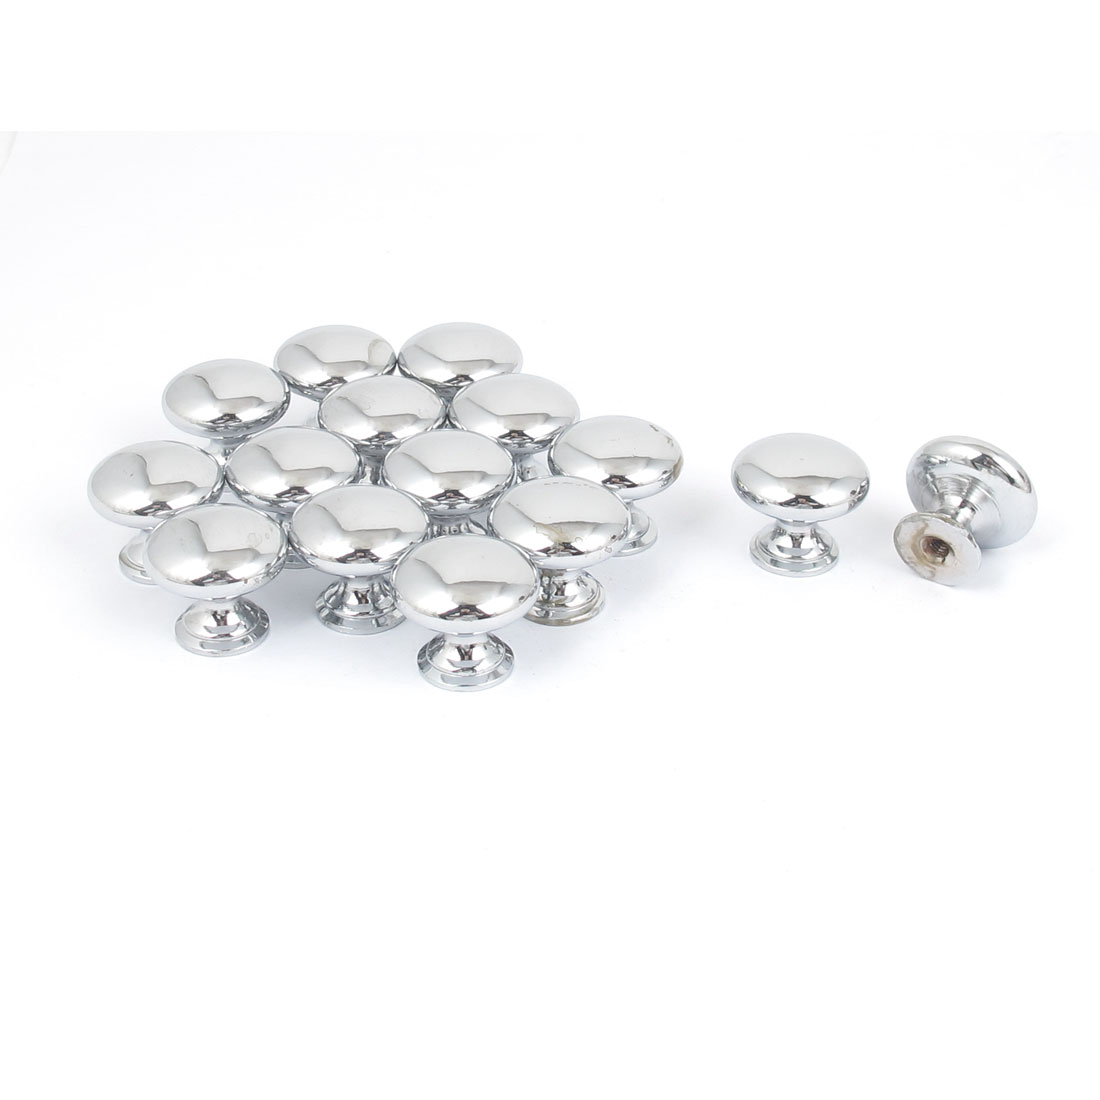 15pcs 25mm x 22mm Alloy Round Pull Knob Silver Tone for Cabinet Drawer